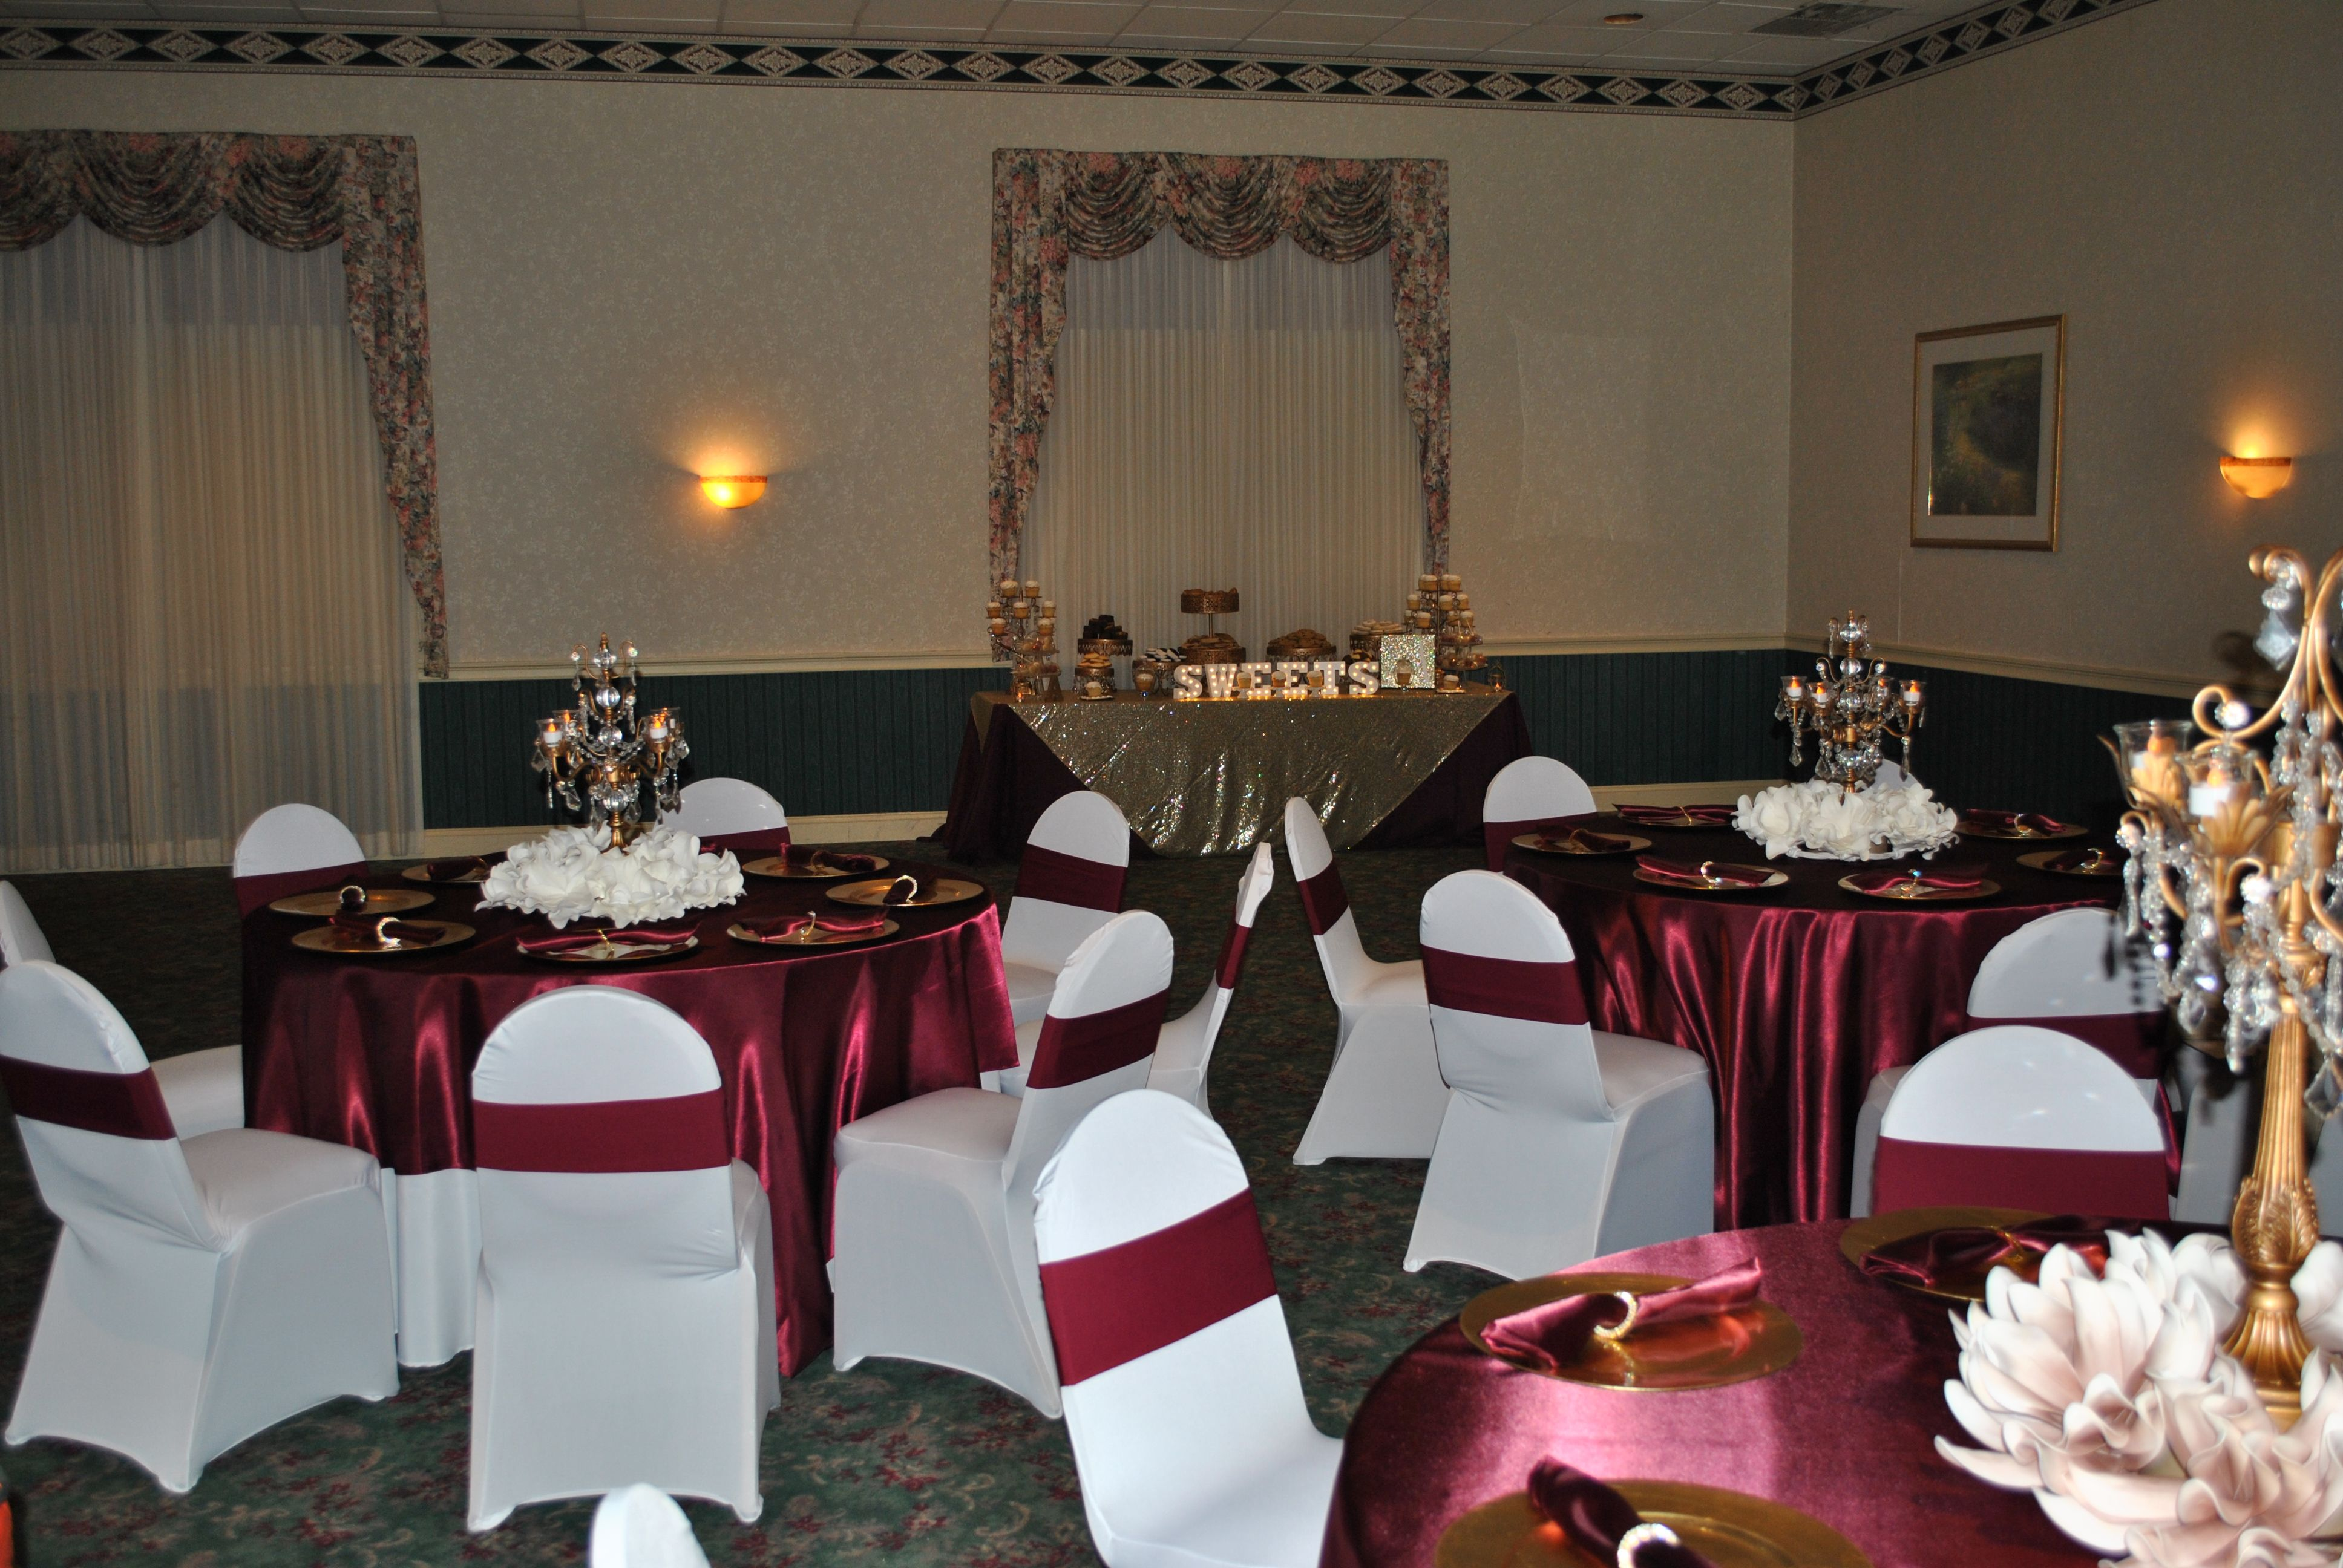 Sweet 16 Marsala Burgundy And Champagne Table Decor With Gold